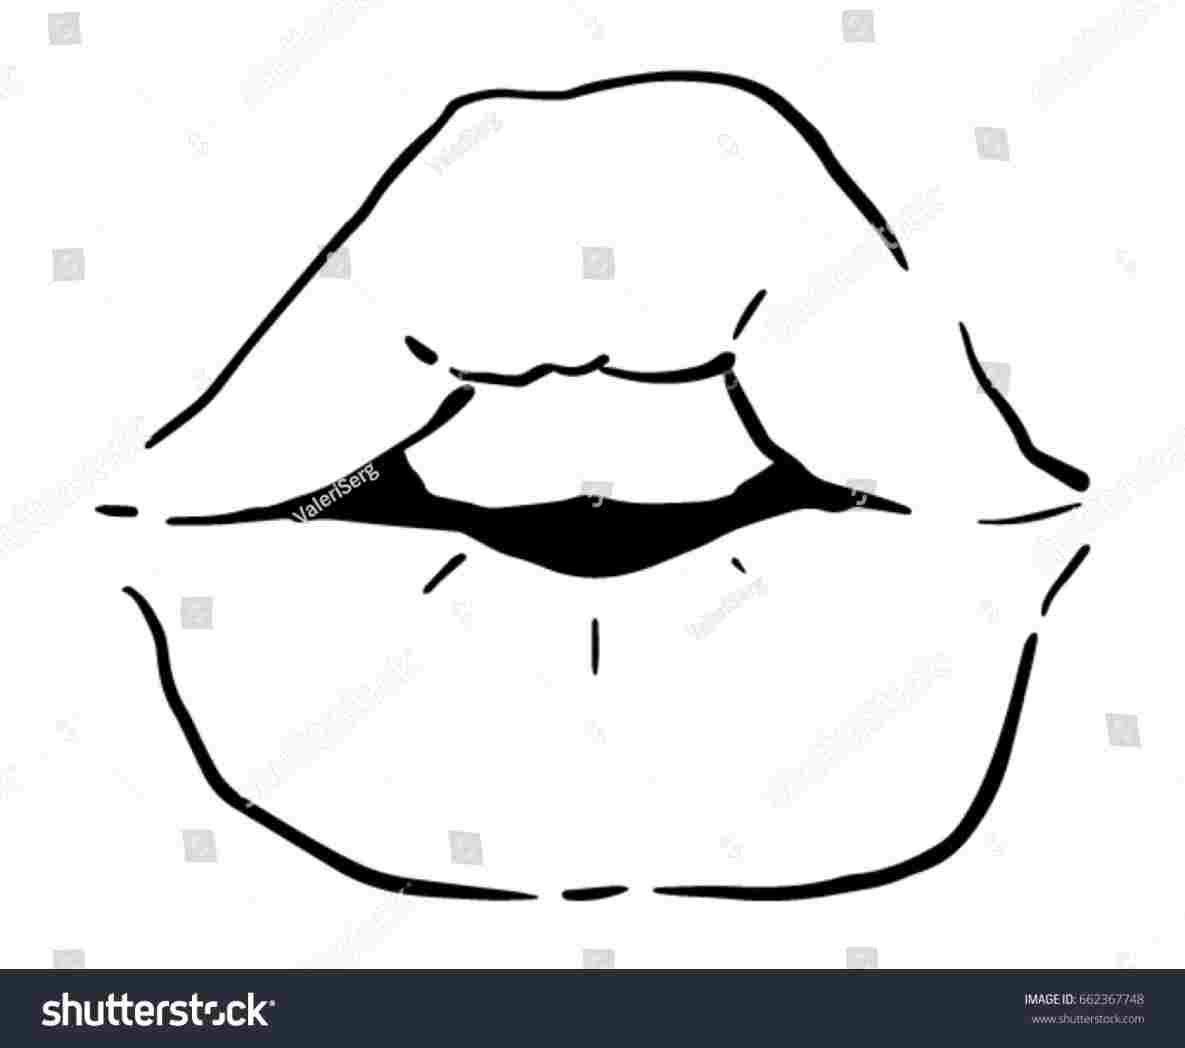 1185x1048 Drawing To Draw Mouths Wikihowrhwikihowcom How A Mouth With Lips